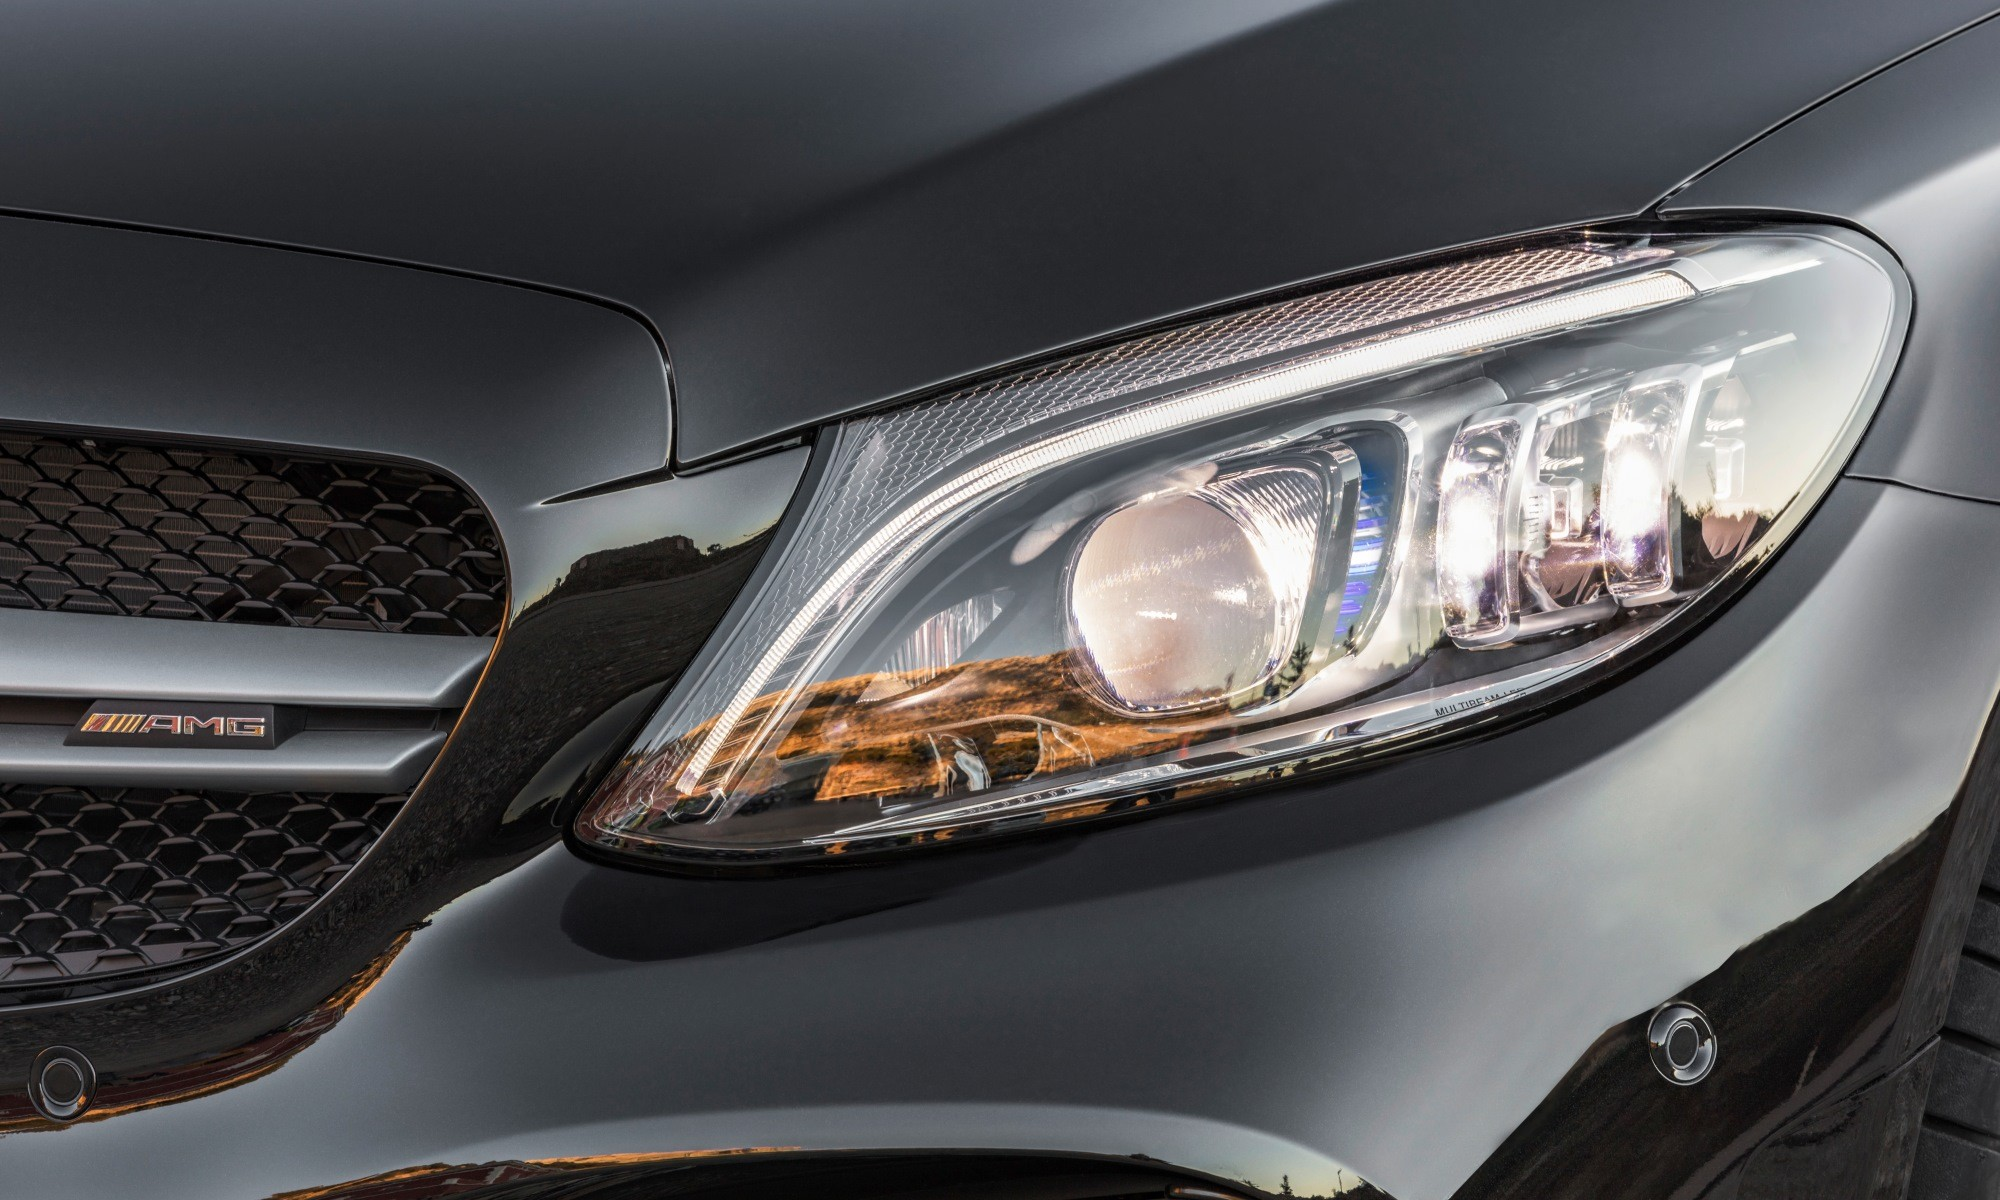 Mercedes-AMG C43 headlamp